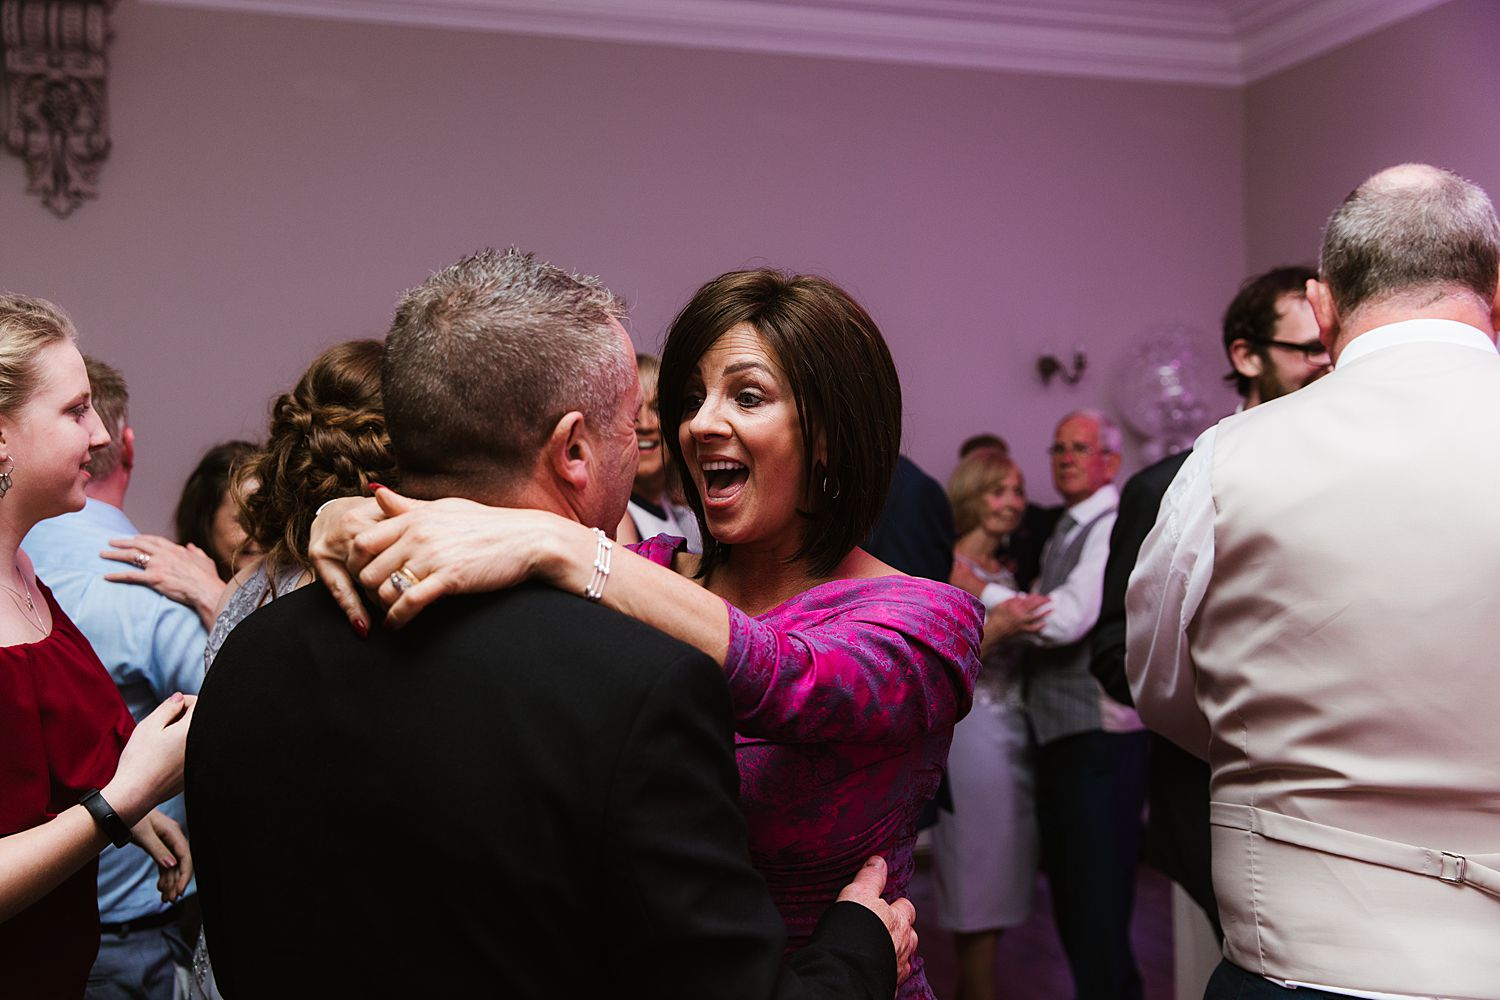 Guests enjoying evening reception on dancefloor at Lake District Storrs Hall Hotel wedding.